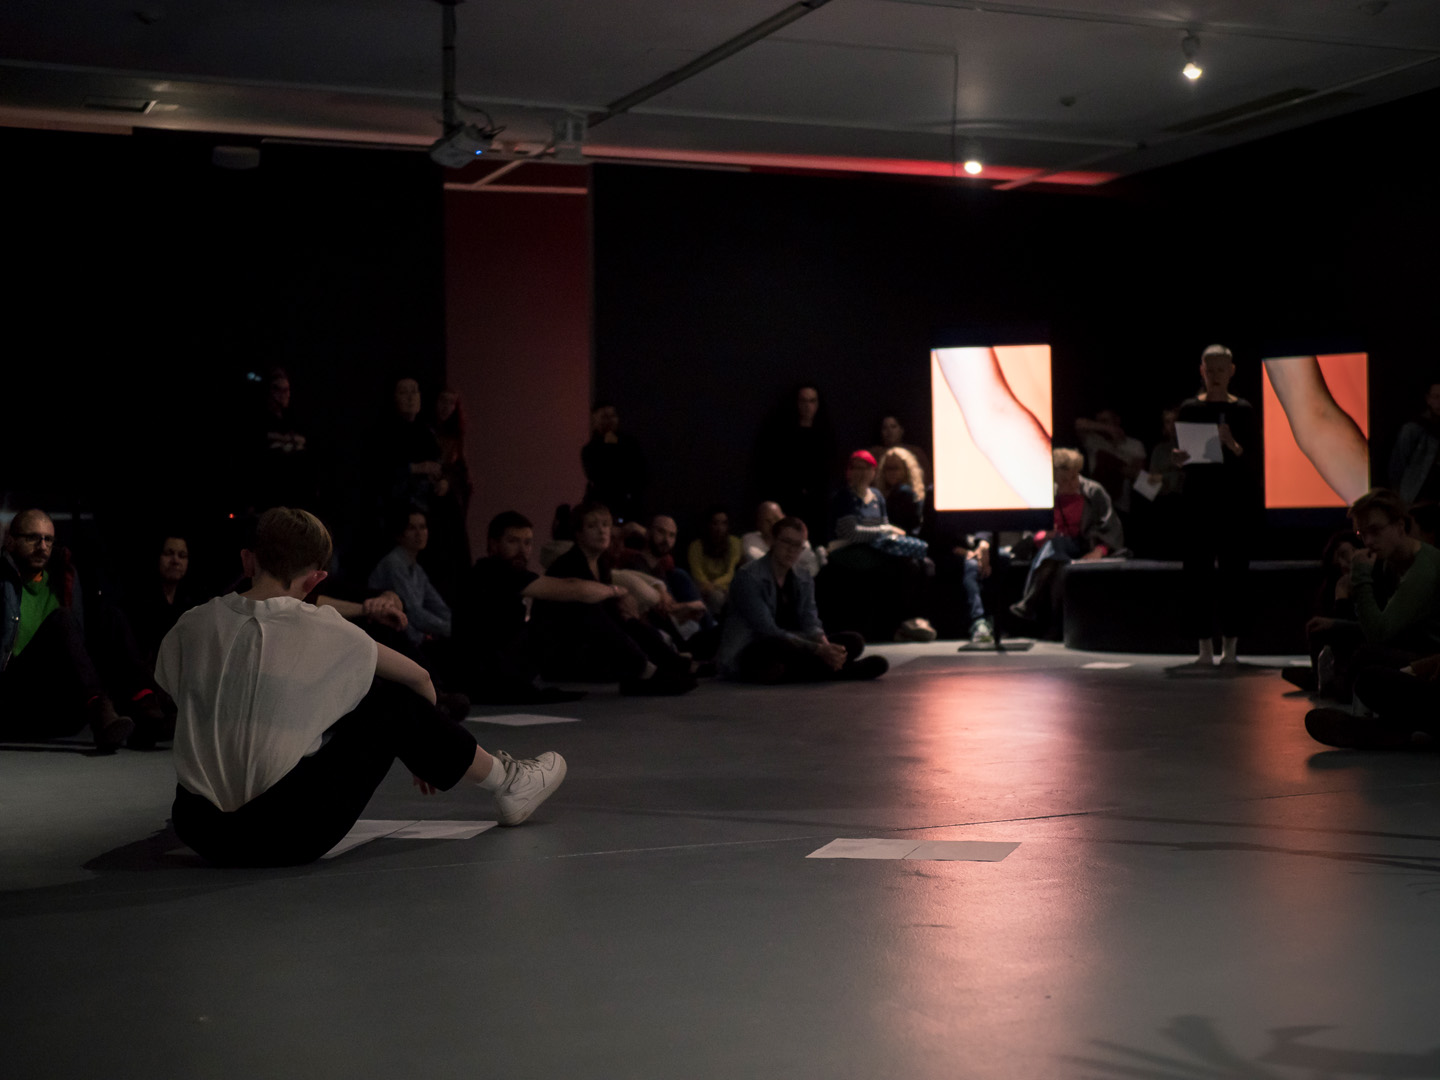 Grace Marlow,  again back, remain through , performed with Virginia Barratt, in Into My Arms co-curated by Frances Barratt and Toby Chapman, Ace Open, 2018. Photography by Sam Roberts.